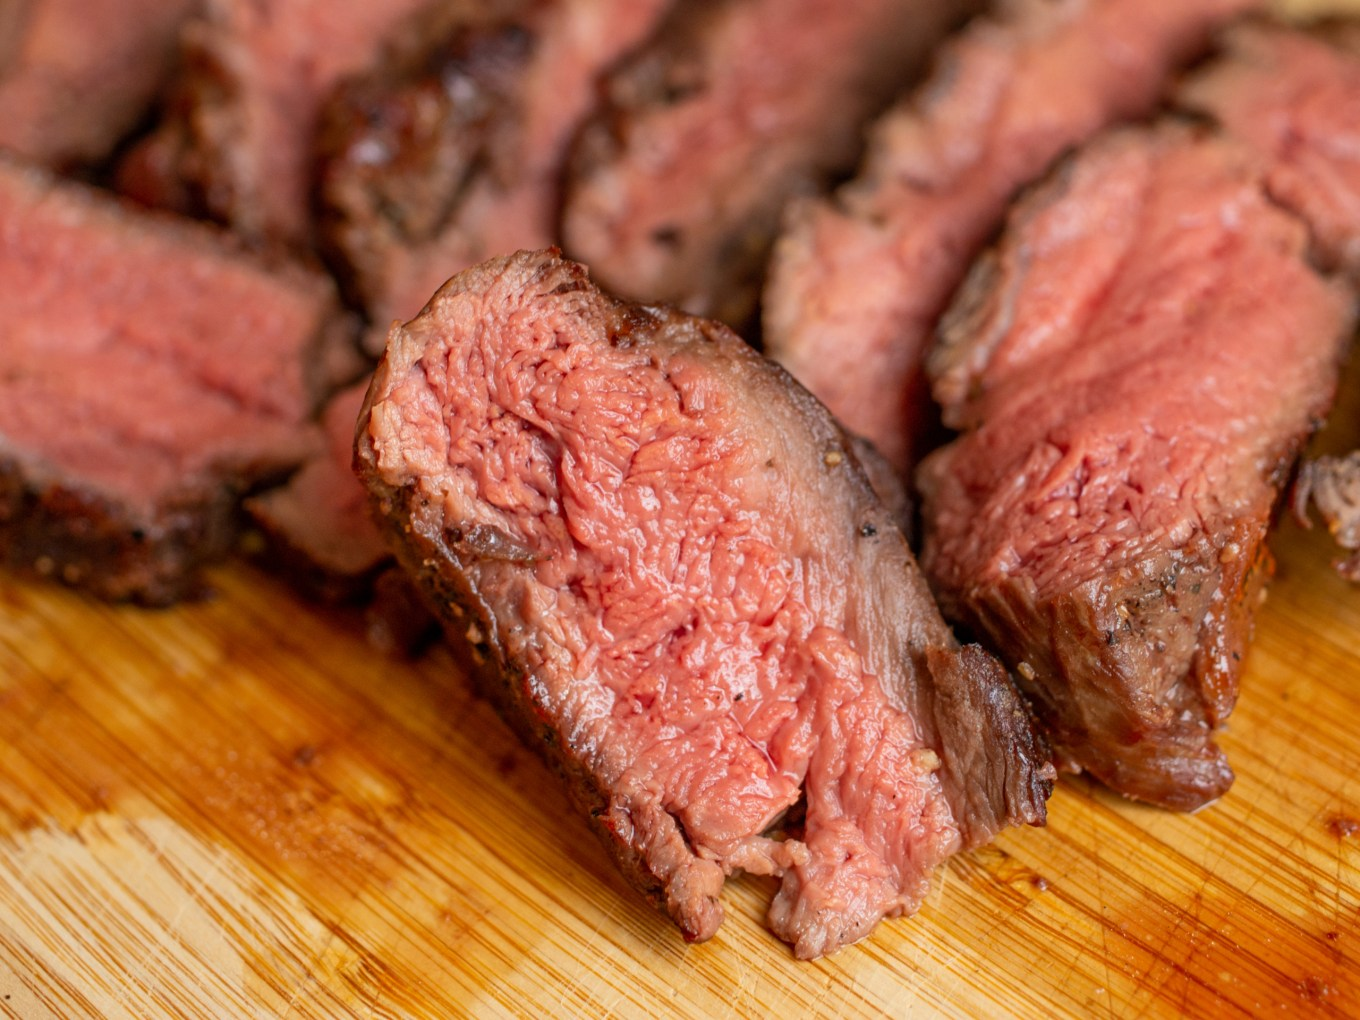 Photo of beef cuts